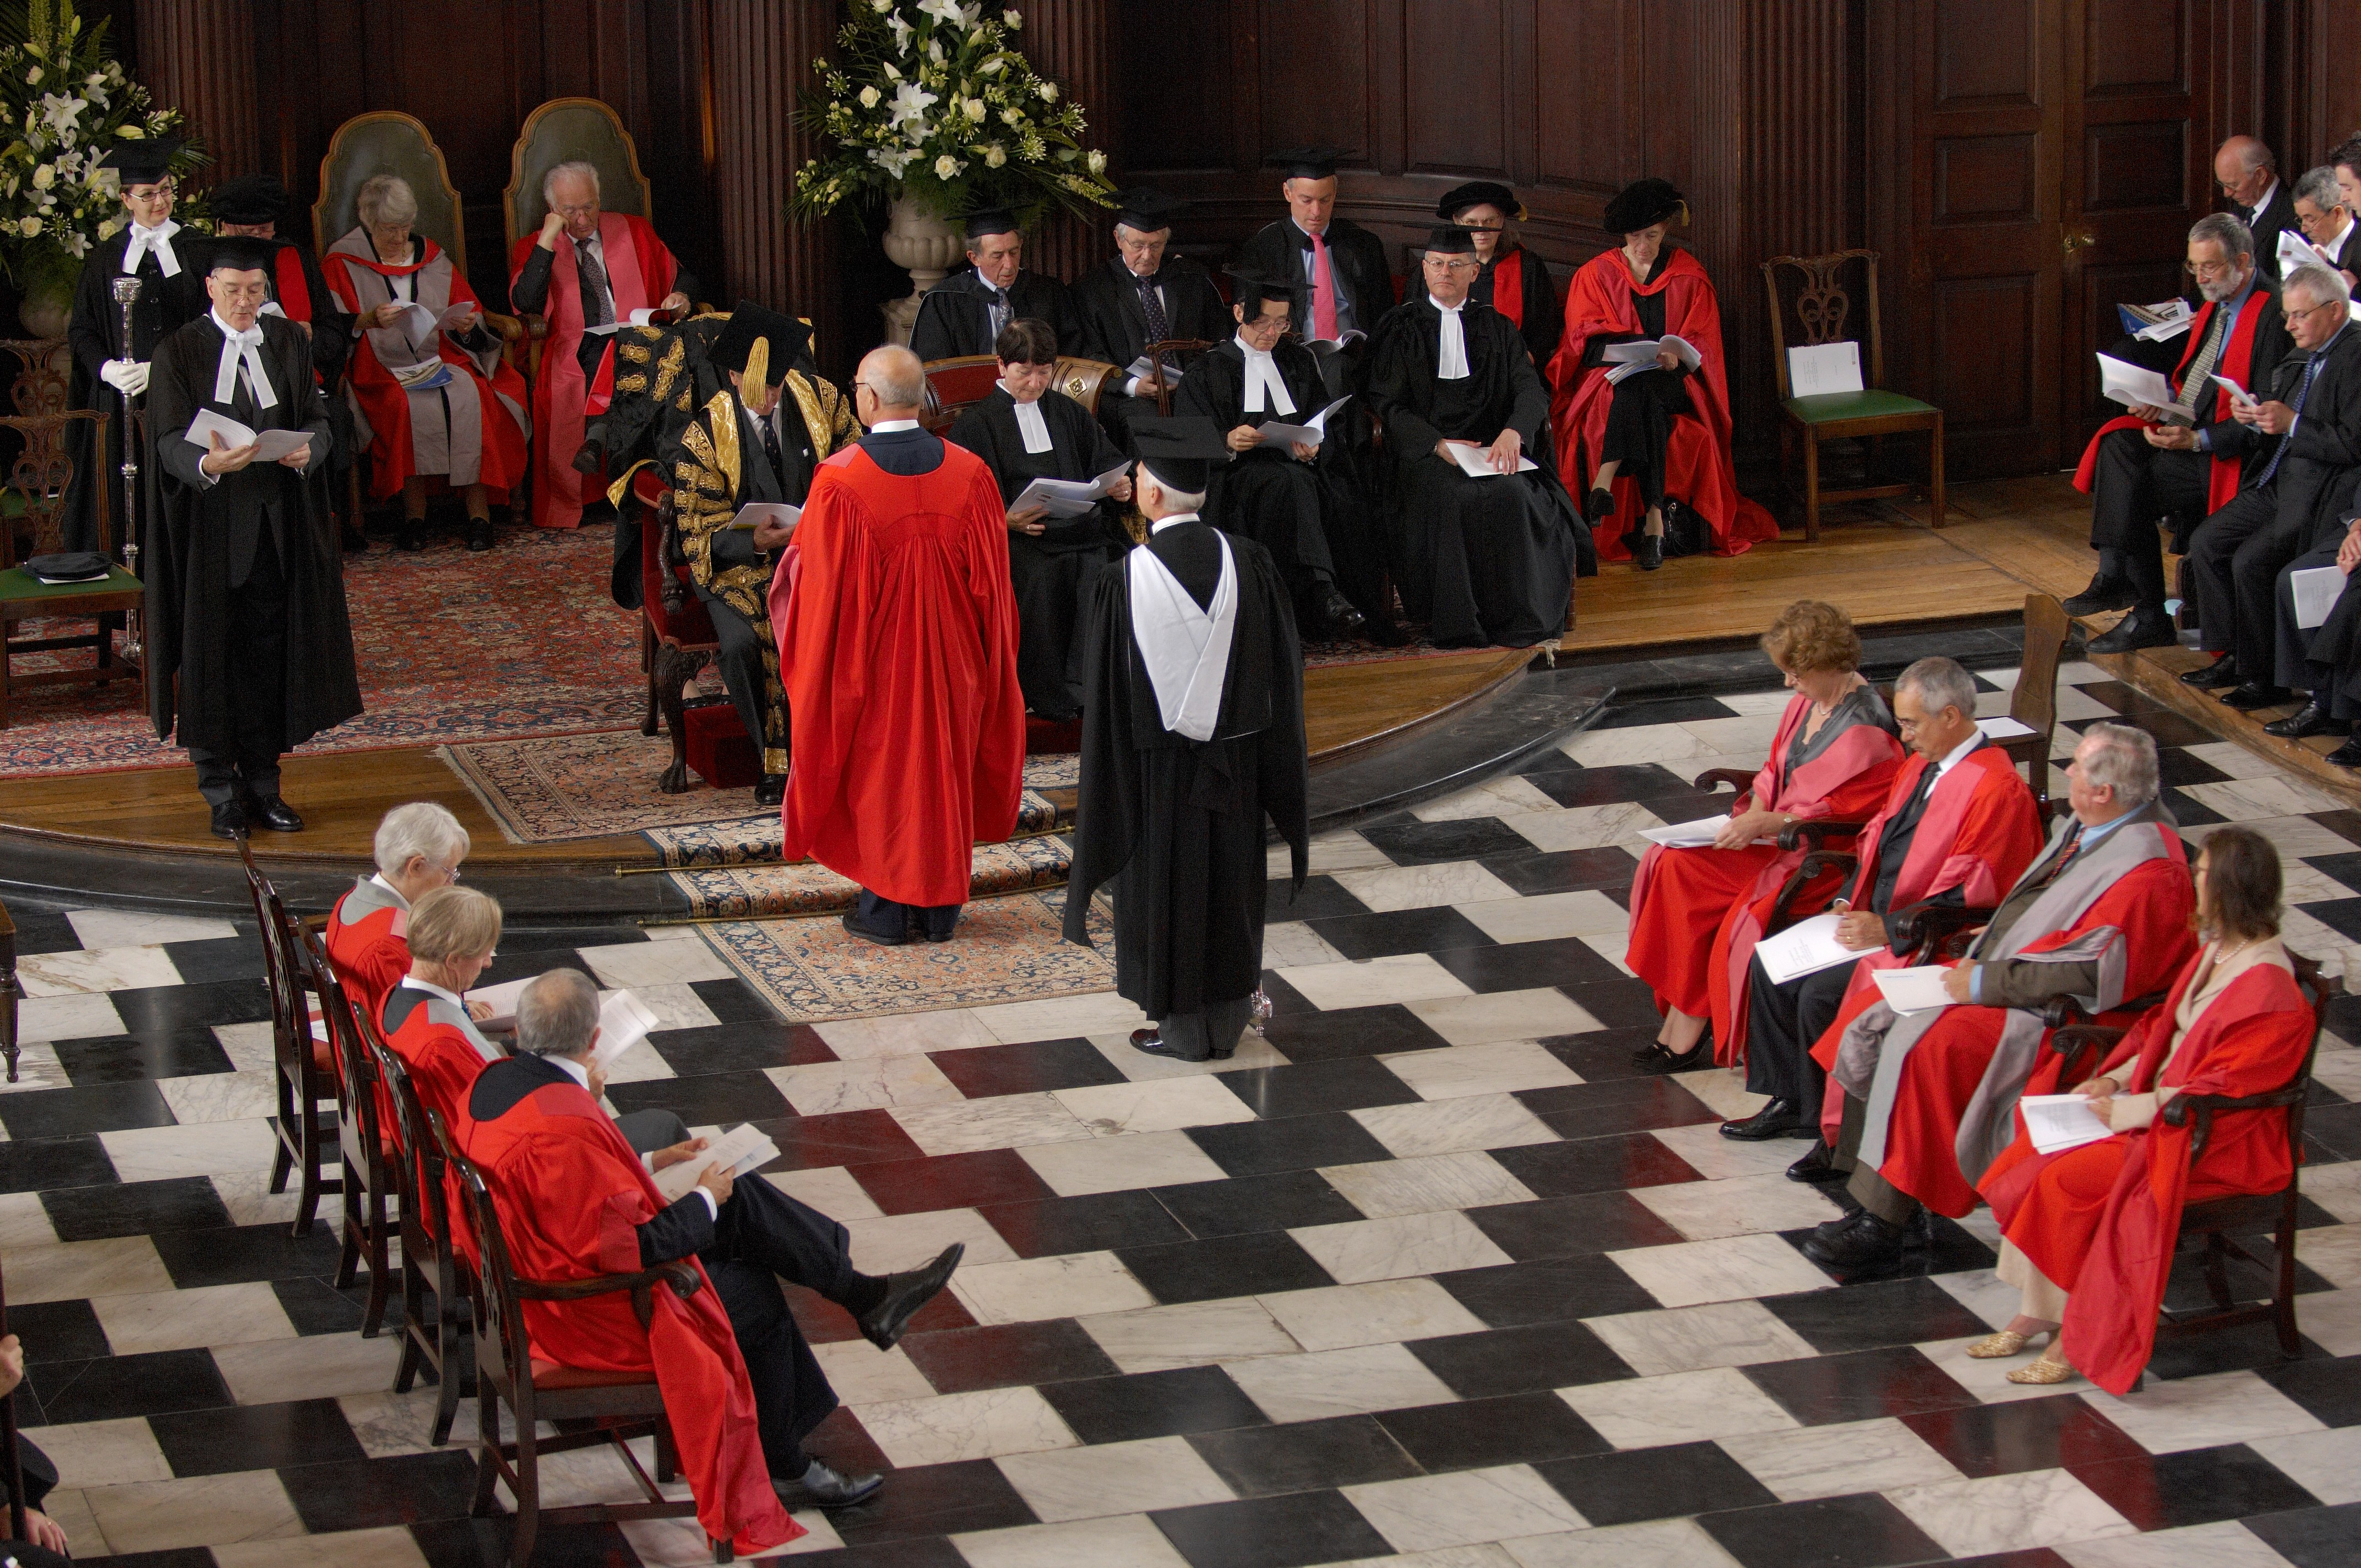 http://www.english.cam.ac.uk/cambridgeauthors/wp-content/uploads/2009/09/ceremony-with-orator.jpg